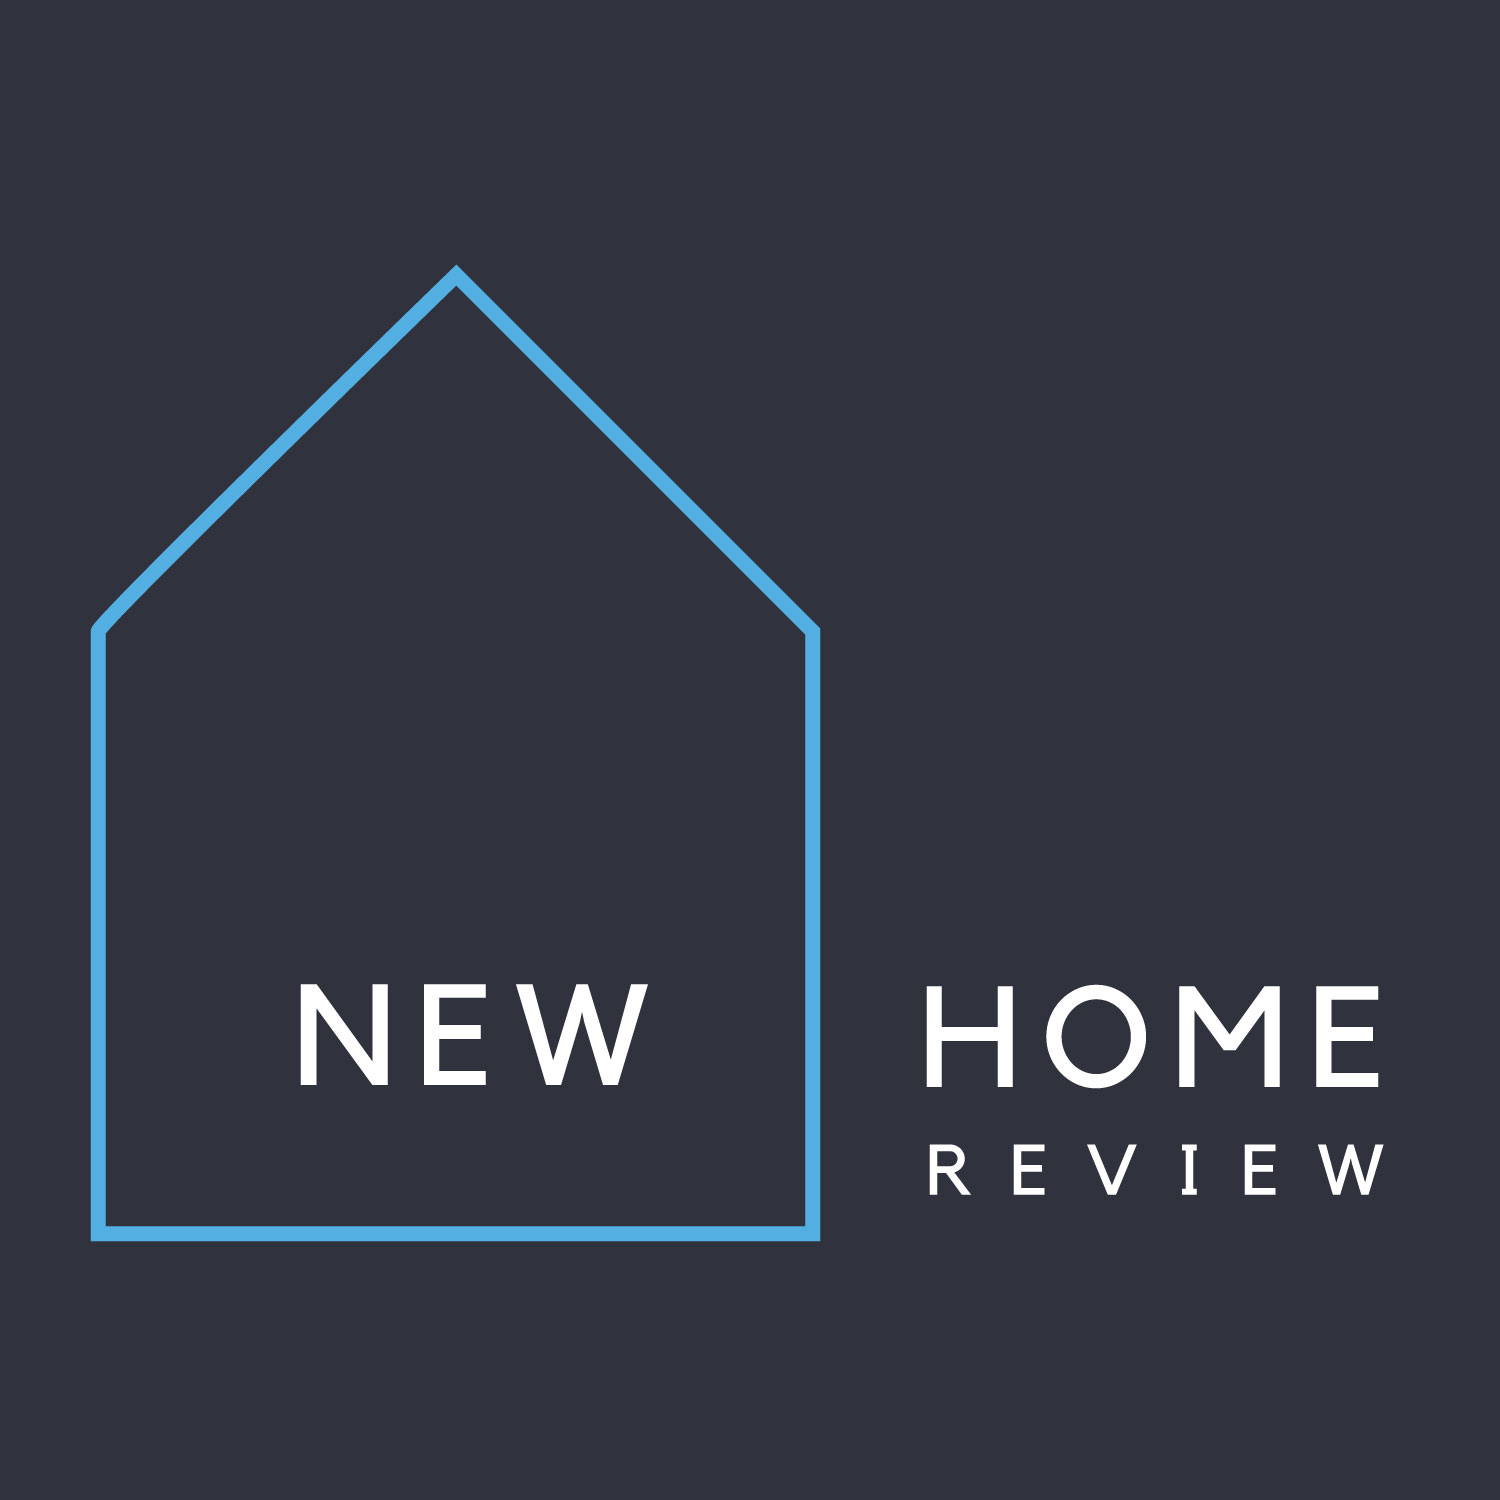 New-Home-Review-Logo-2019-Grey-Background-White-Text-&-Blue-House.jpg